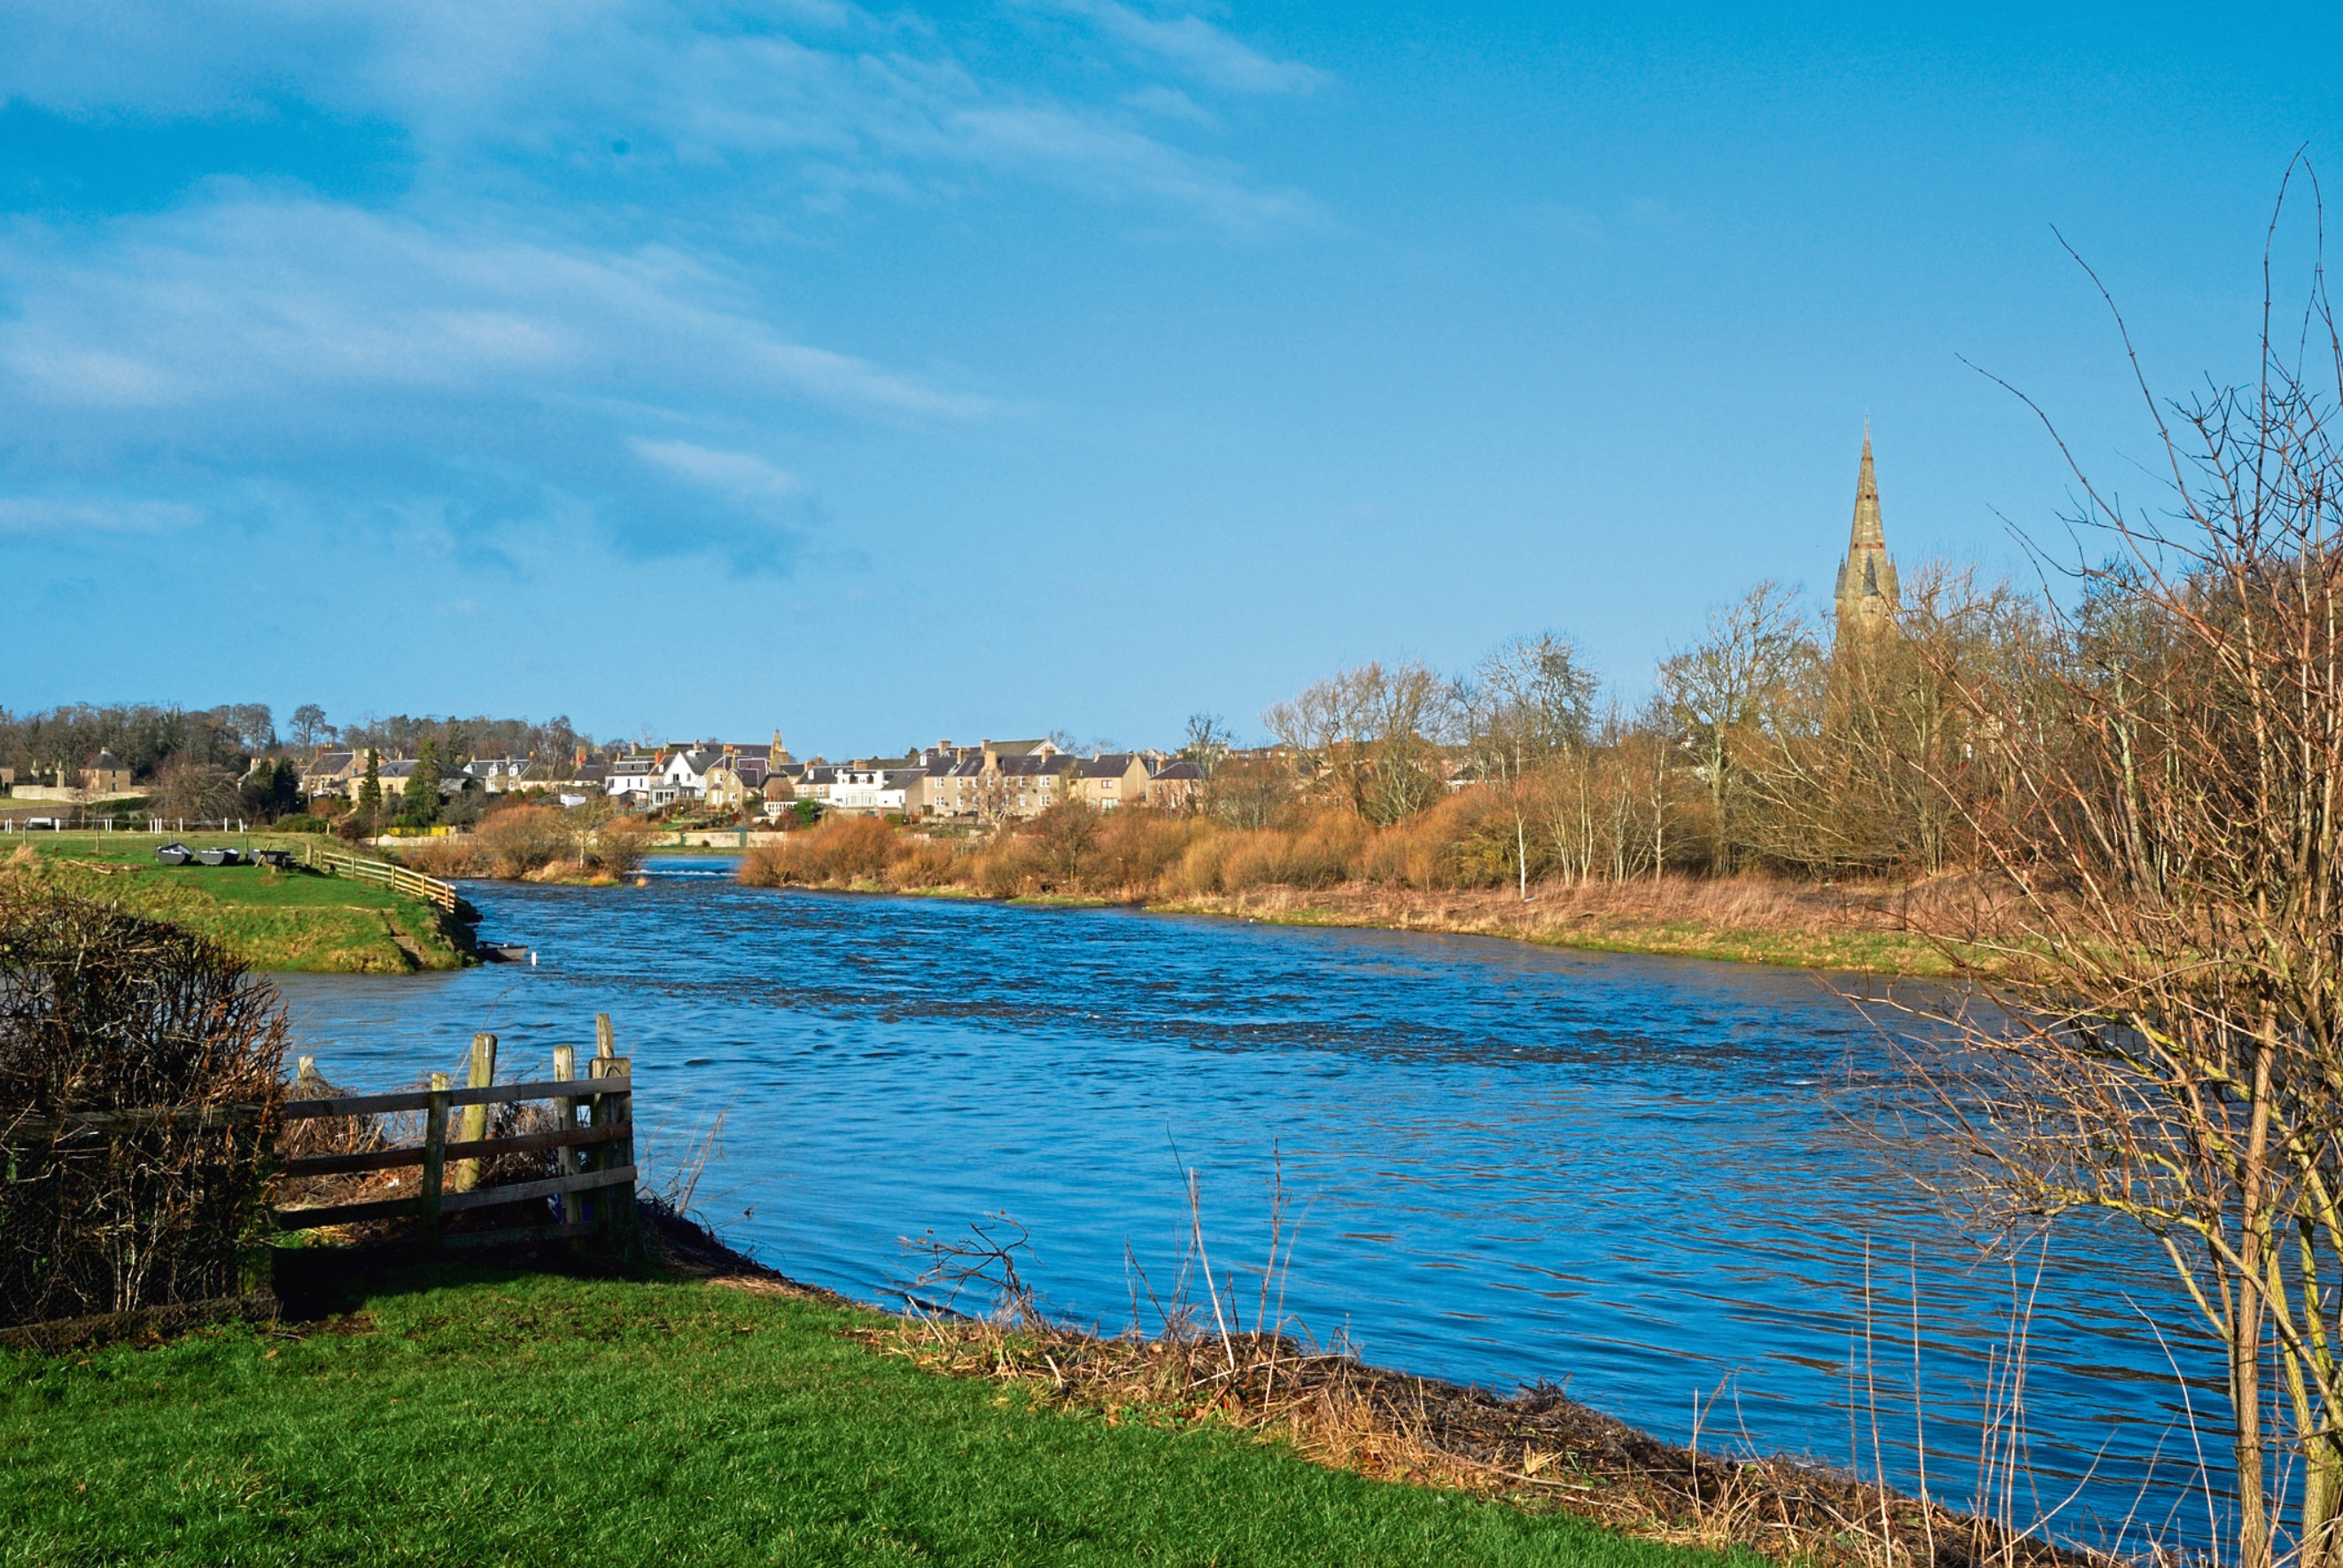 The River Tweed runs through Kelso in the Scottish Borders